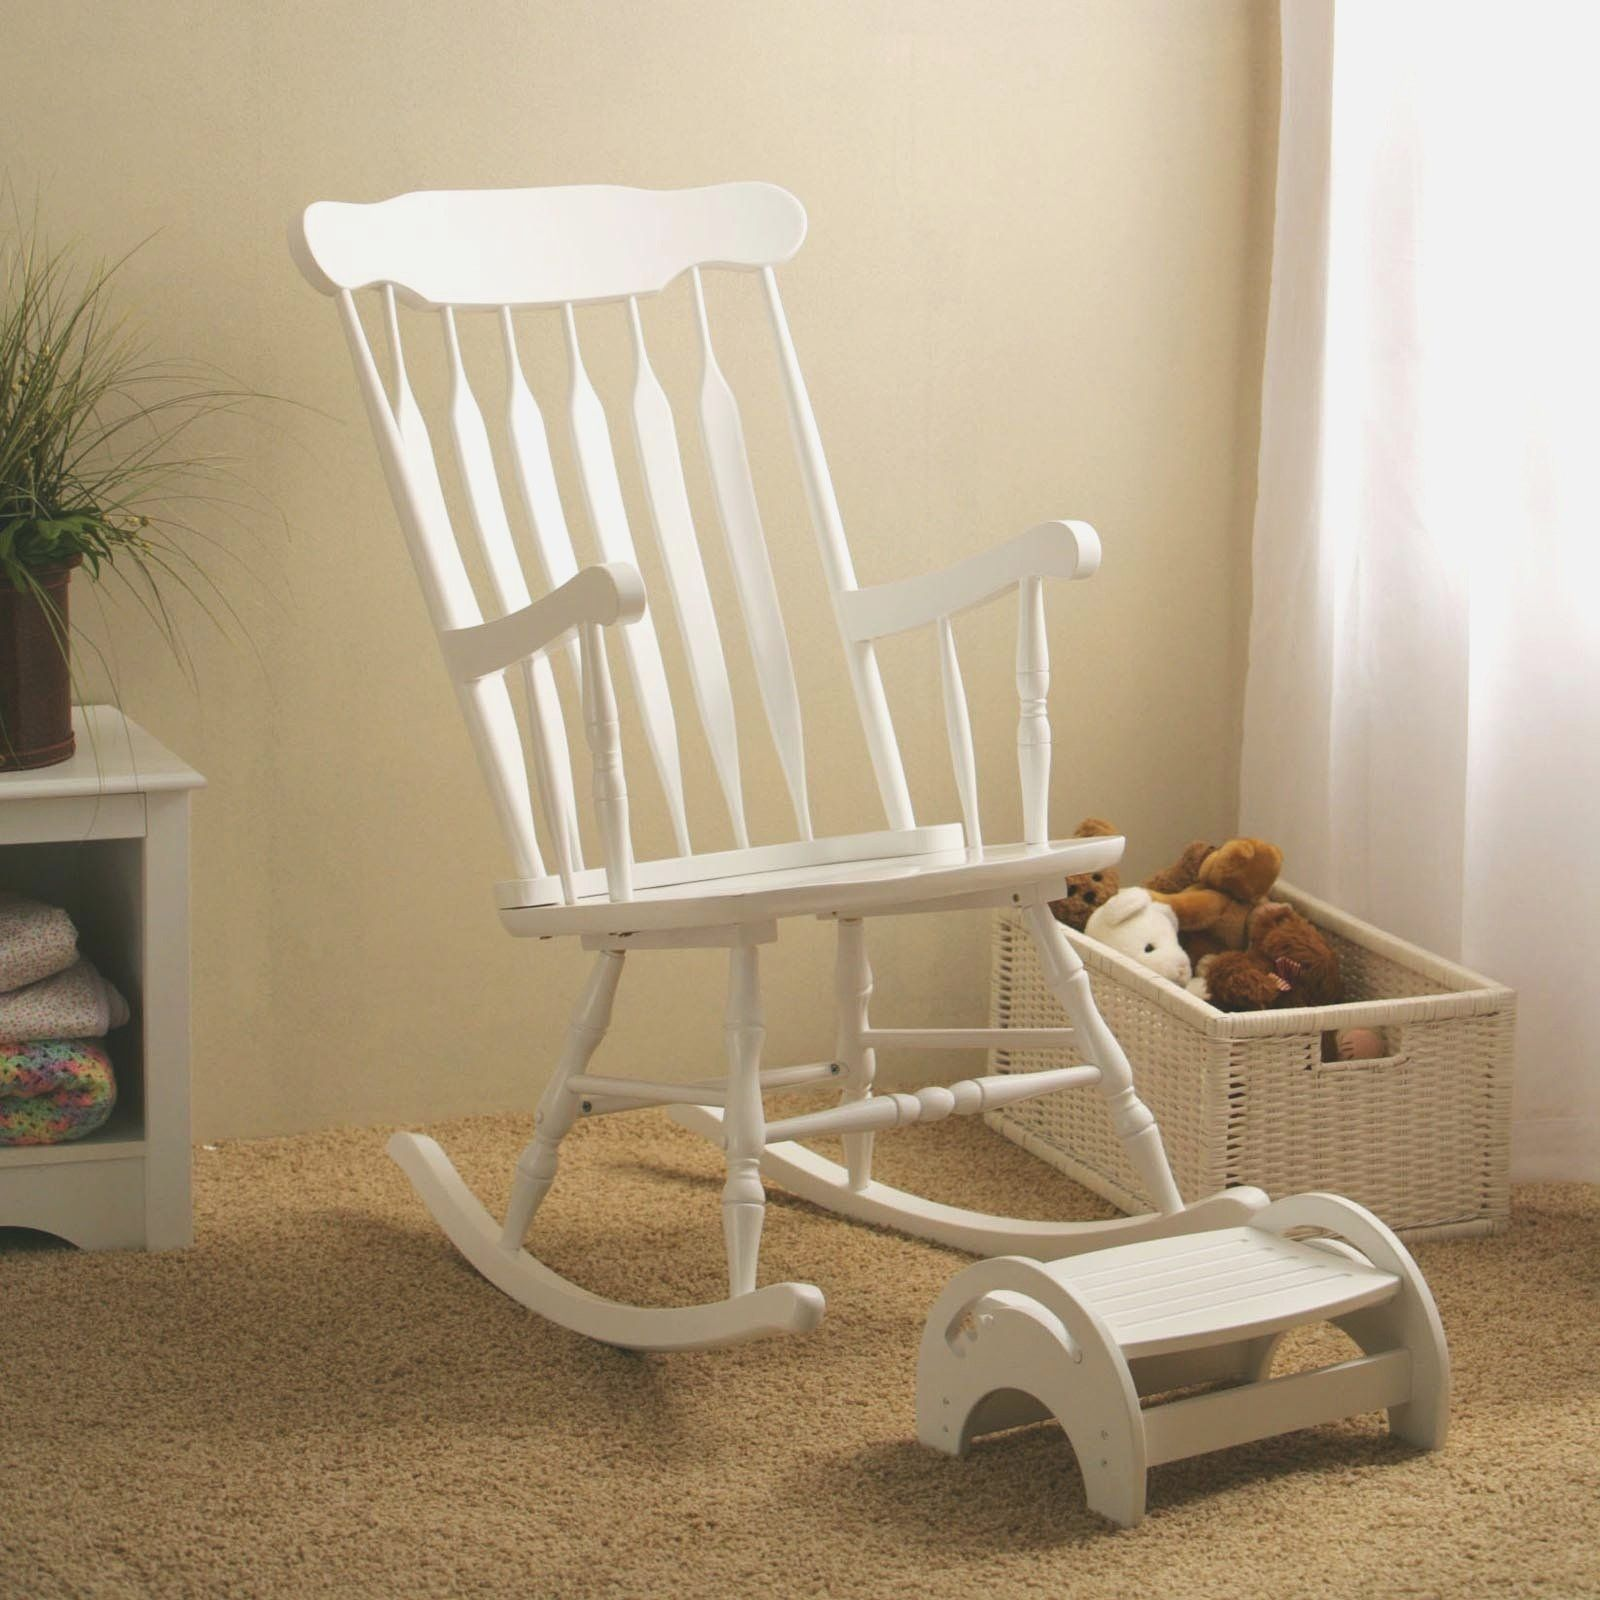 types of rocking chairs walmart pool all different antique oakton manufacturing